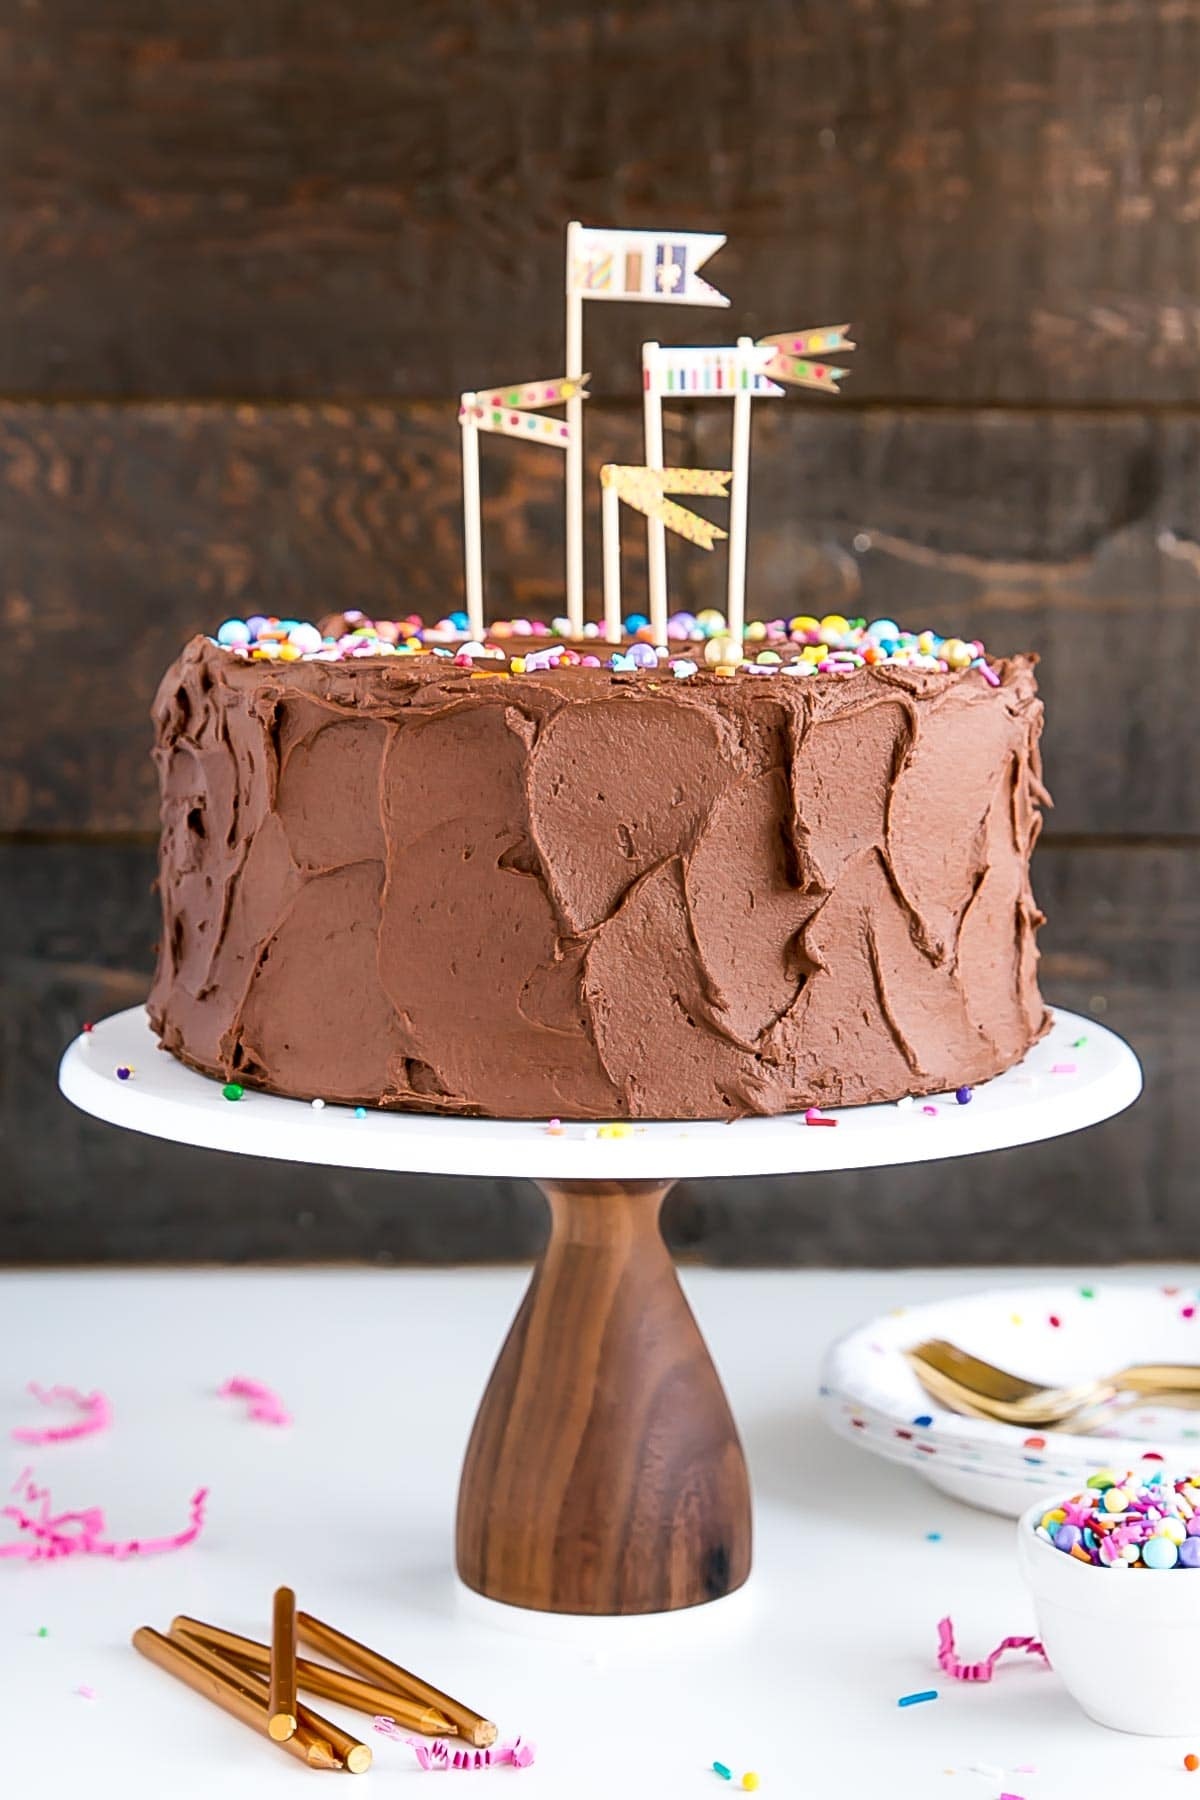 The Ultimate Birthday Cake A Classic Yellow With Rich Chocolate Frosting And Colorful